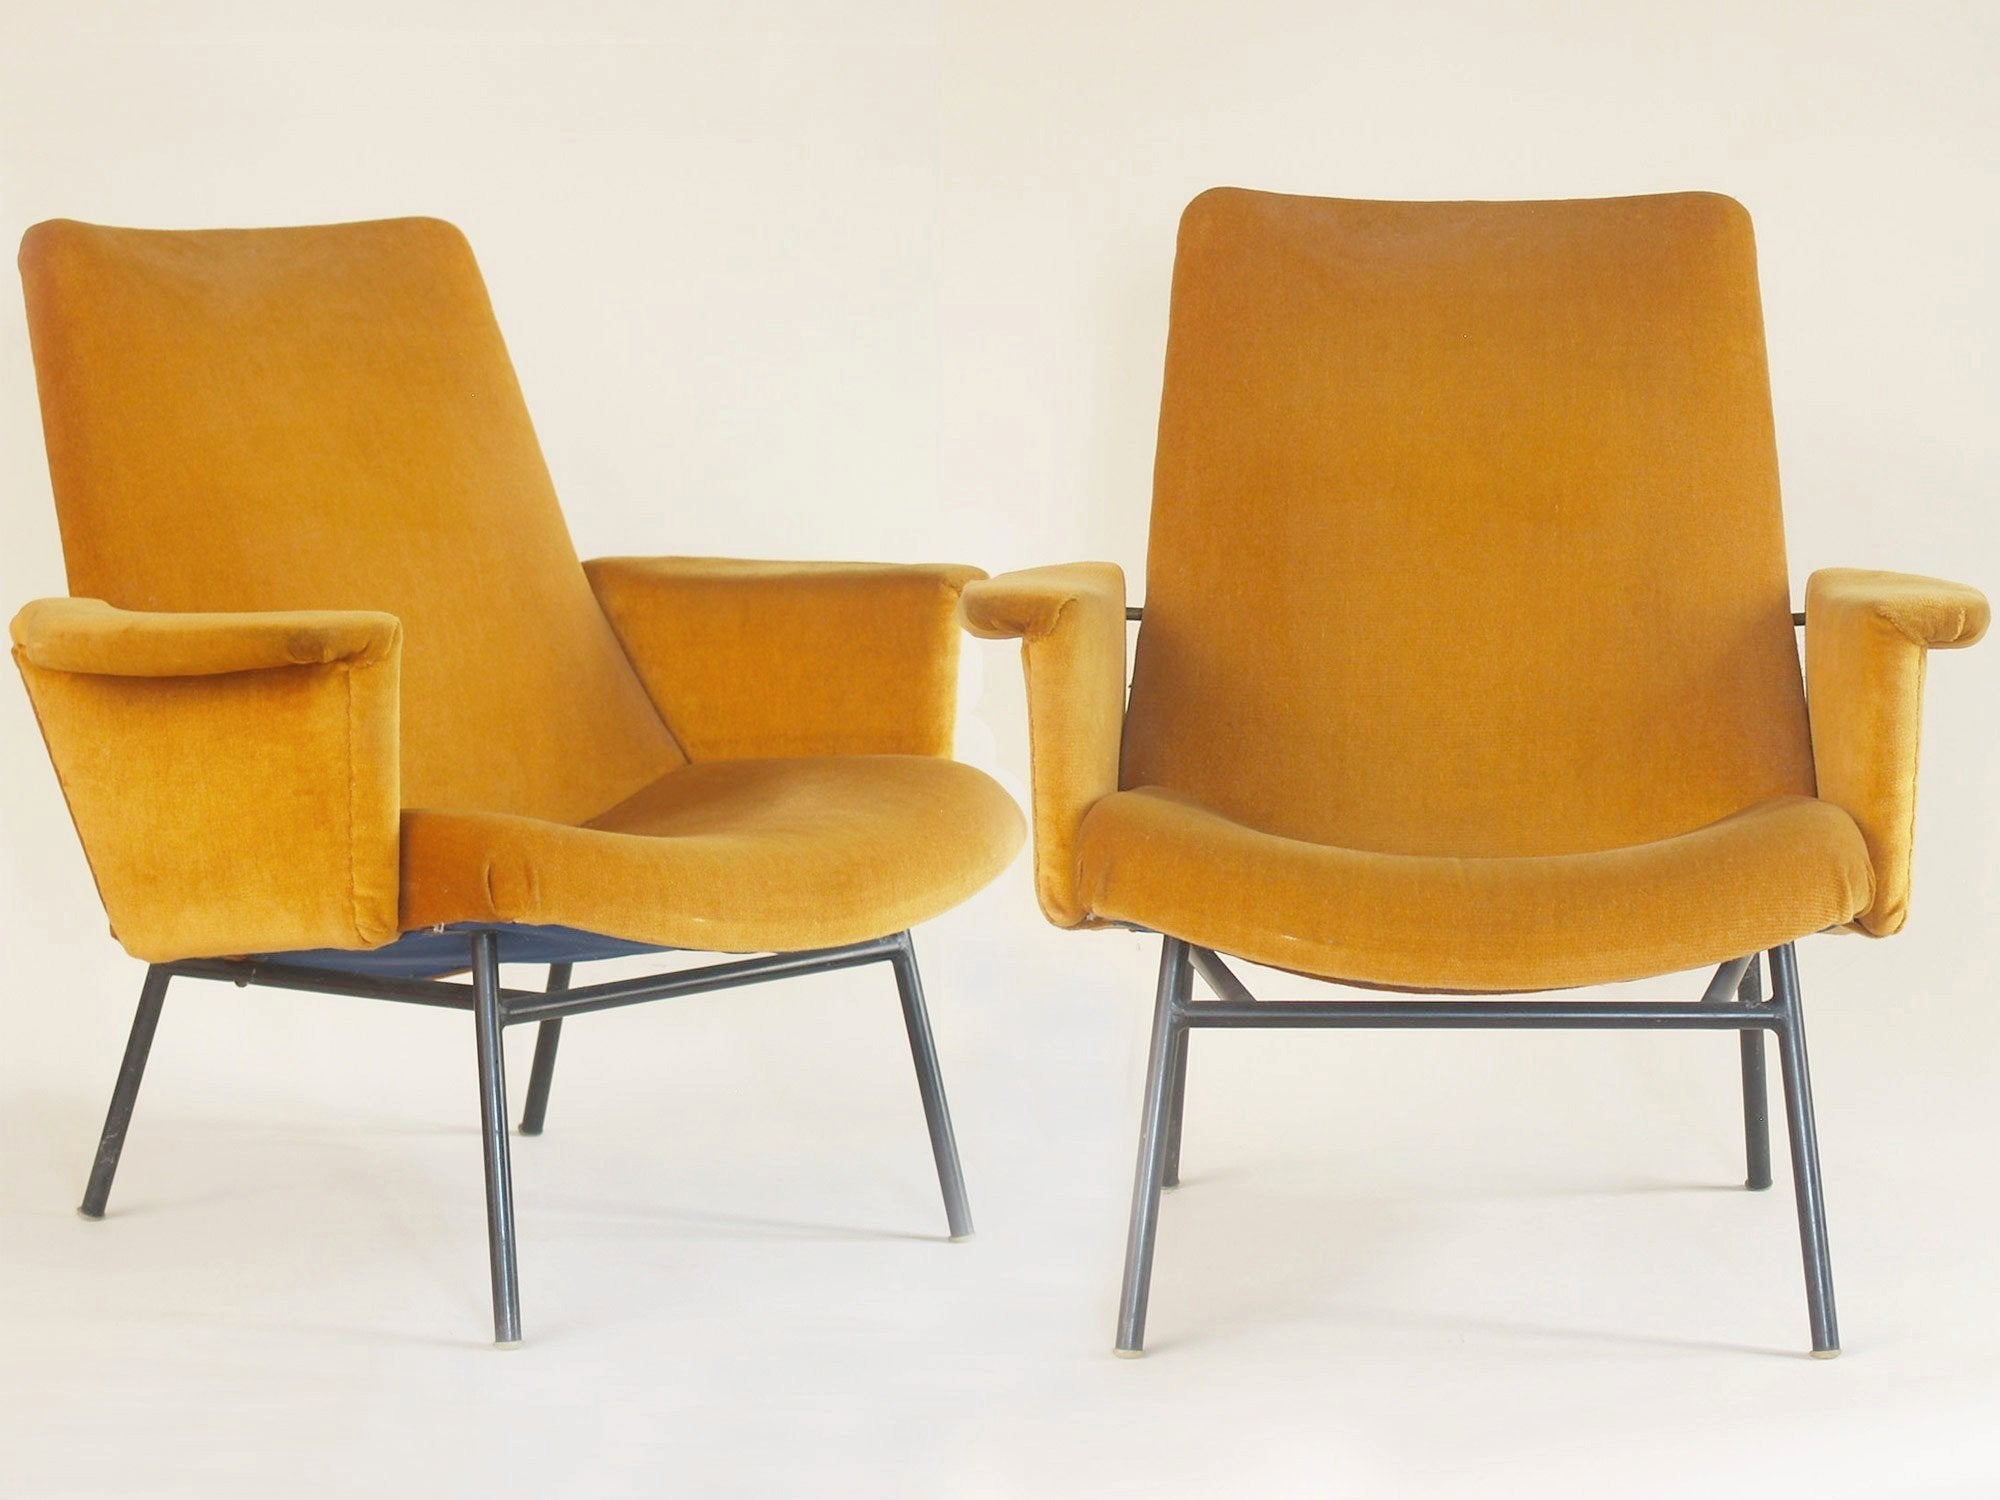 Paire de fauteuils SK660 par Pierre Guariche pour Steiner, France (1953)..Pair of SK660 chairs by Pierre Guariche for Steiner, France (1953)